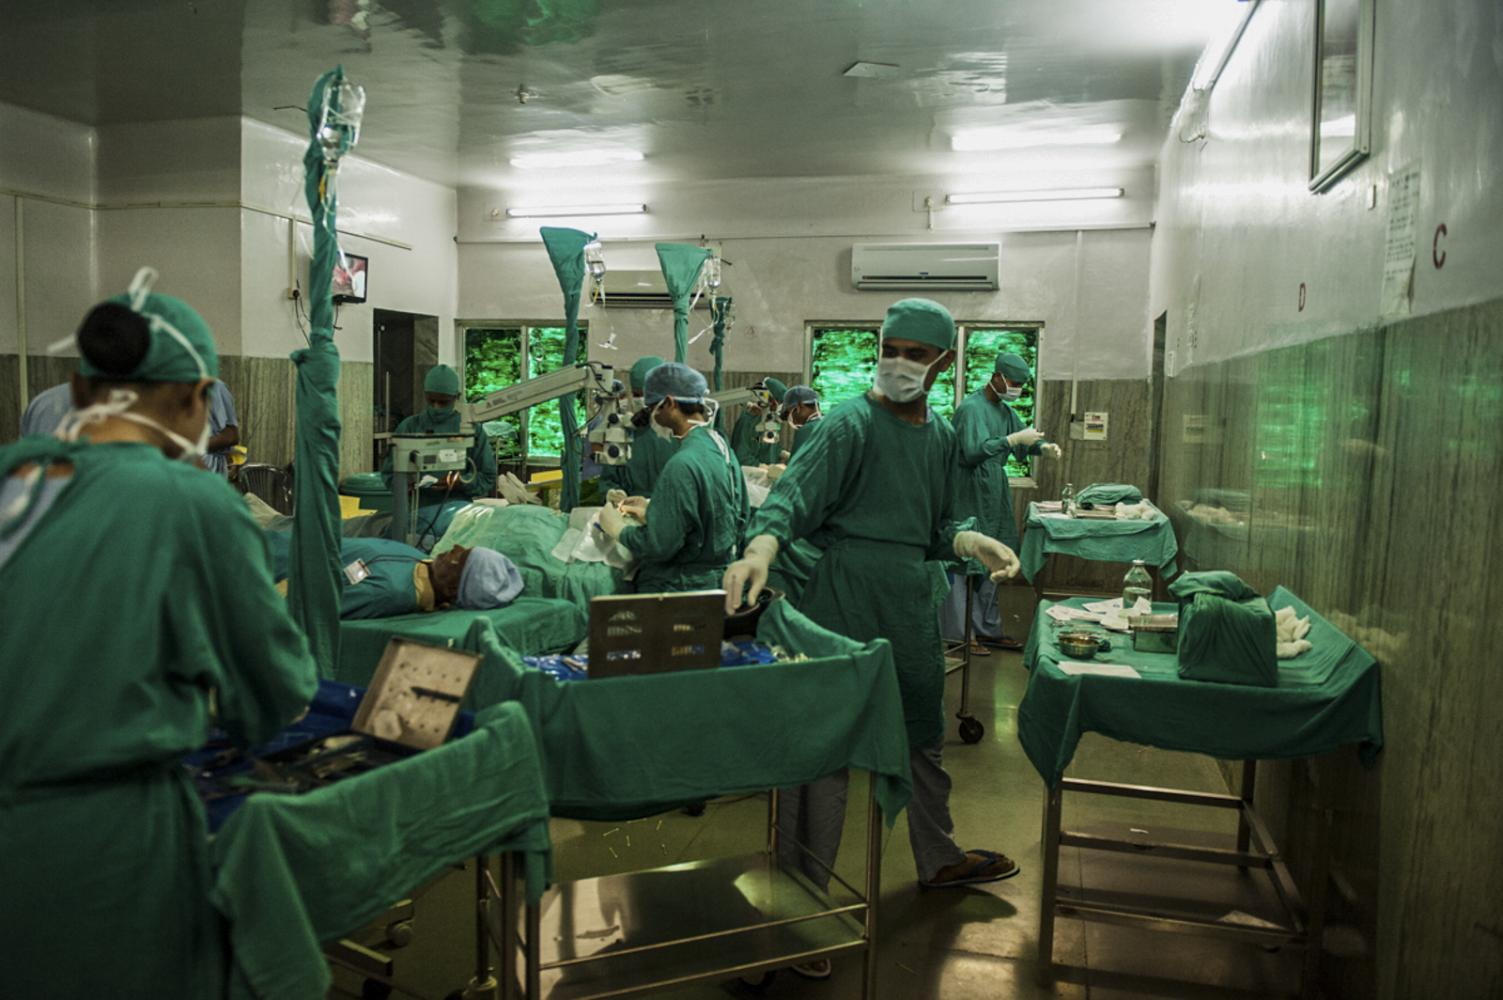 Inside one of the five operating theatres multiple patients can by operated on at the same time. Patients are awake and able to walk both pre and post operation. Chitrakoot, India.